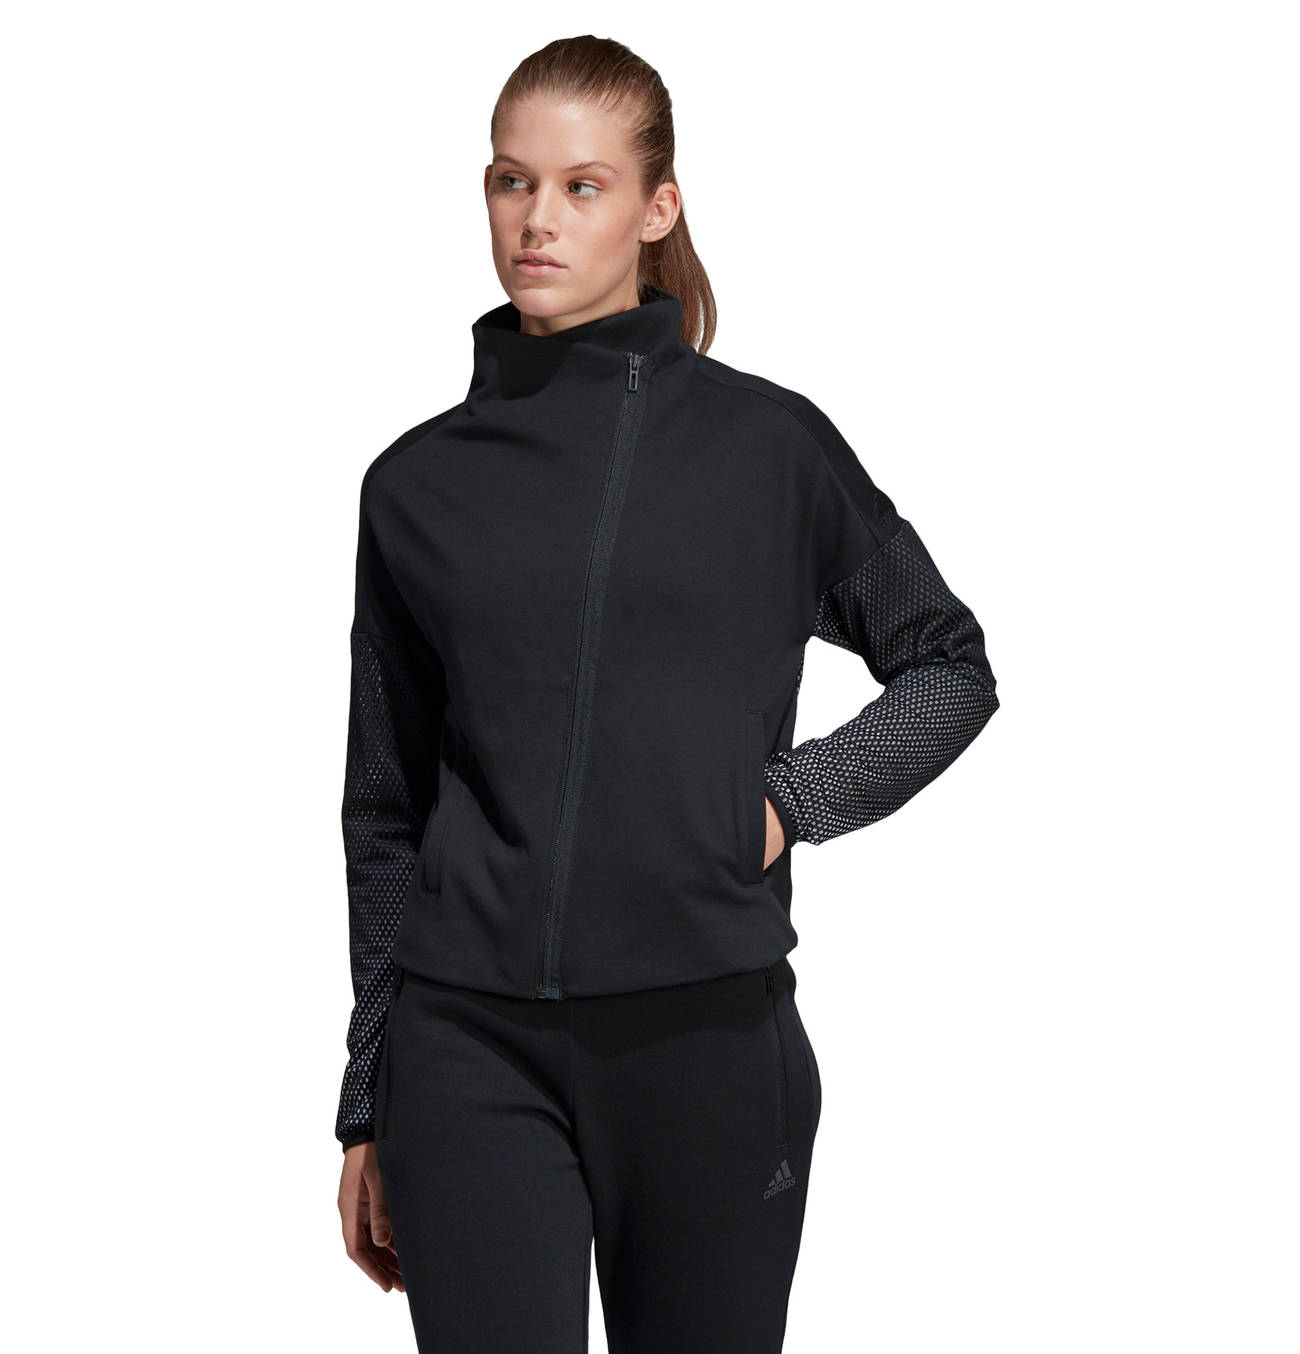 Damen Kapuzenjacke Heartracer